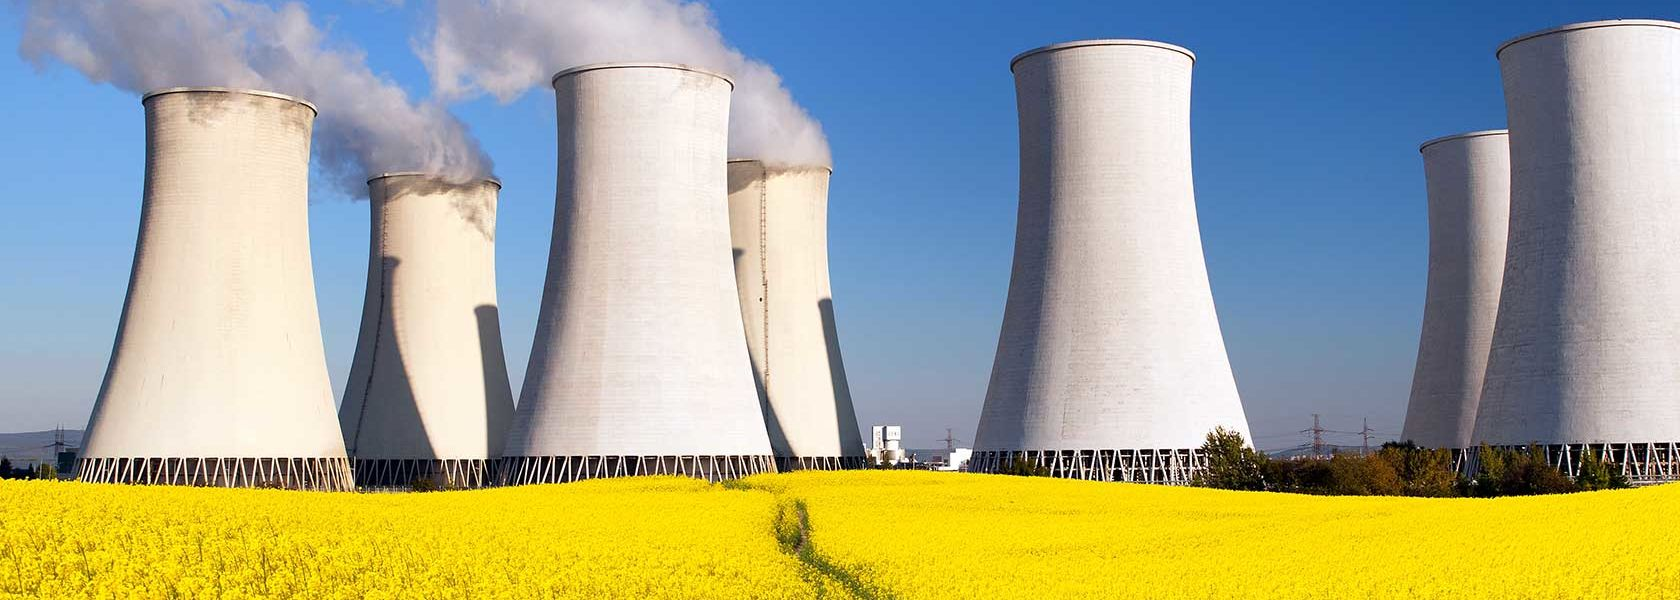 Nuclear energy not feasible for at least a decade